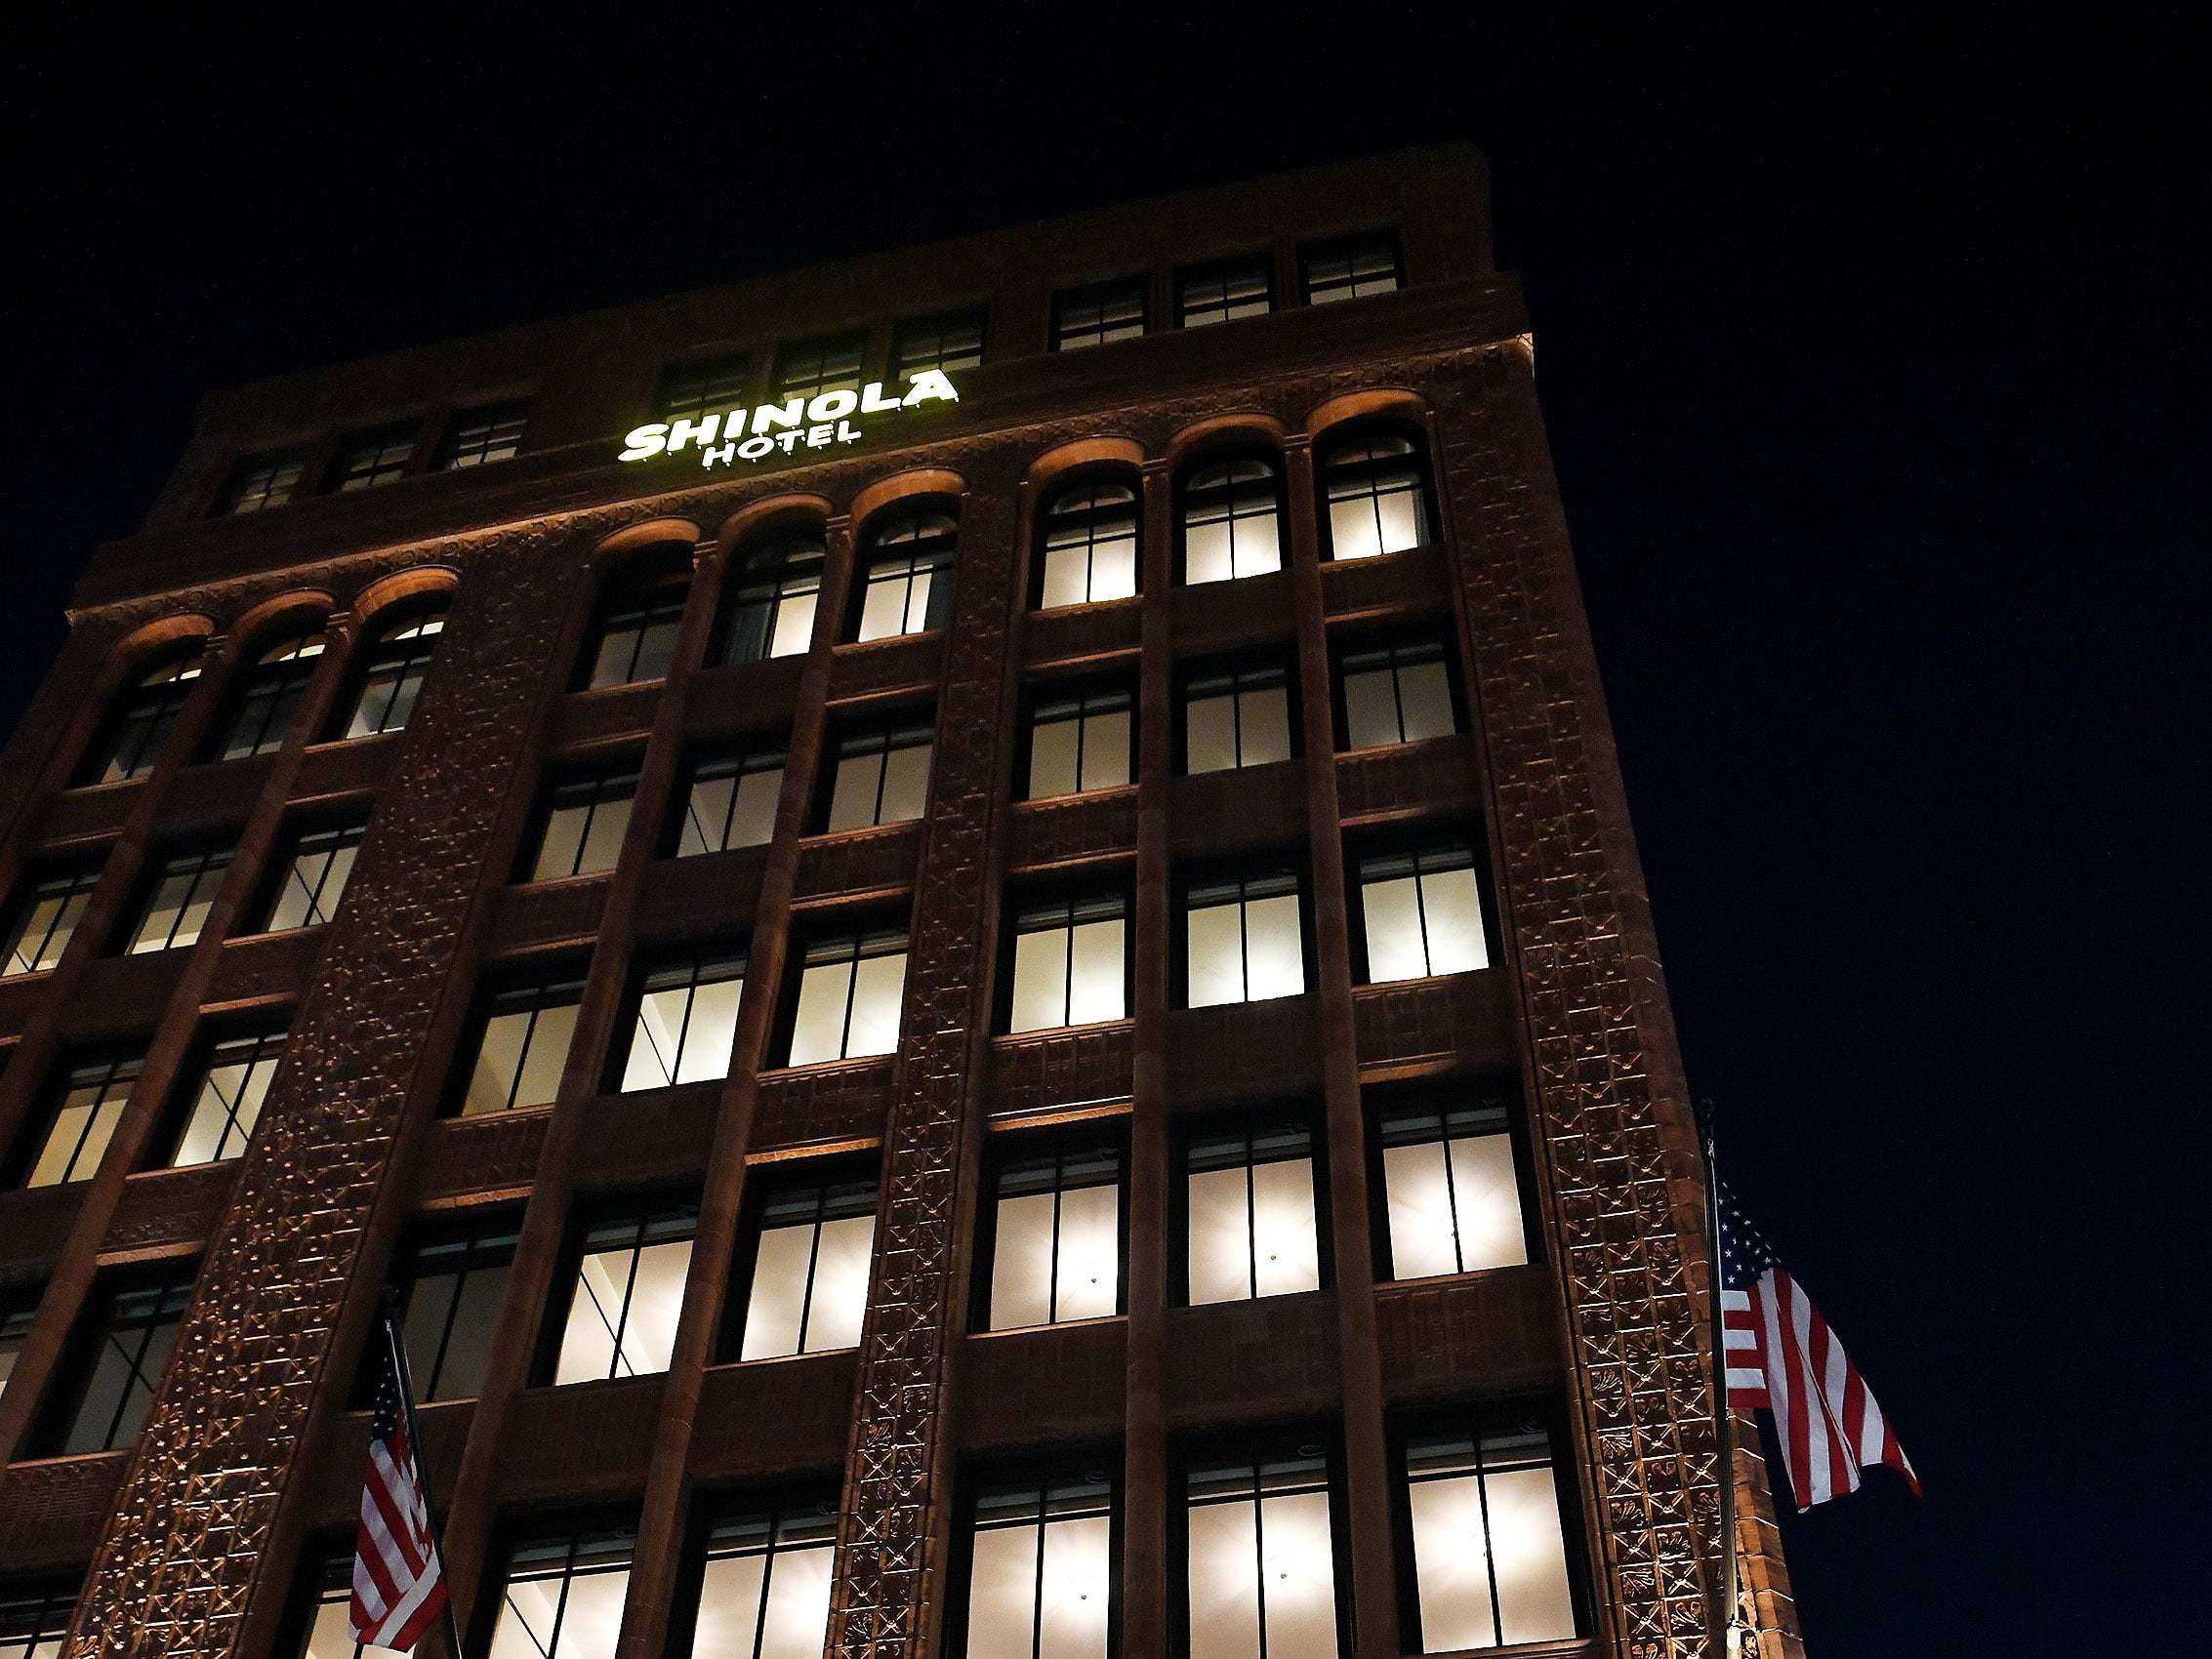 The exterior lights are turned on at the Shinola Hotel in Detroit on Dec. 18, 2018.